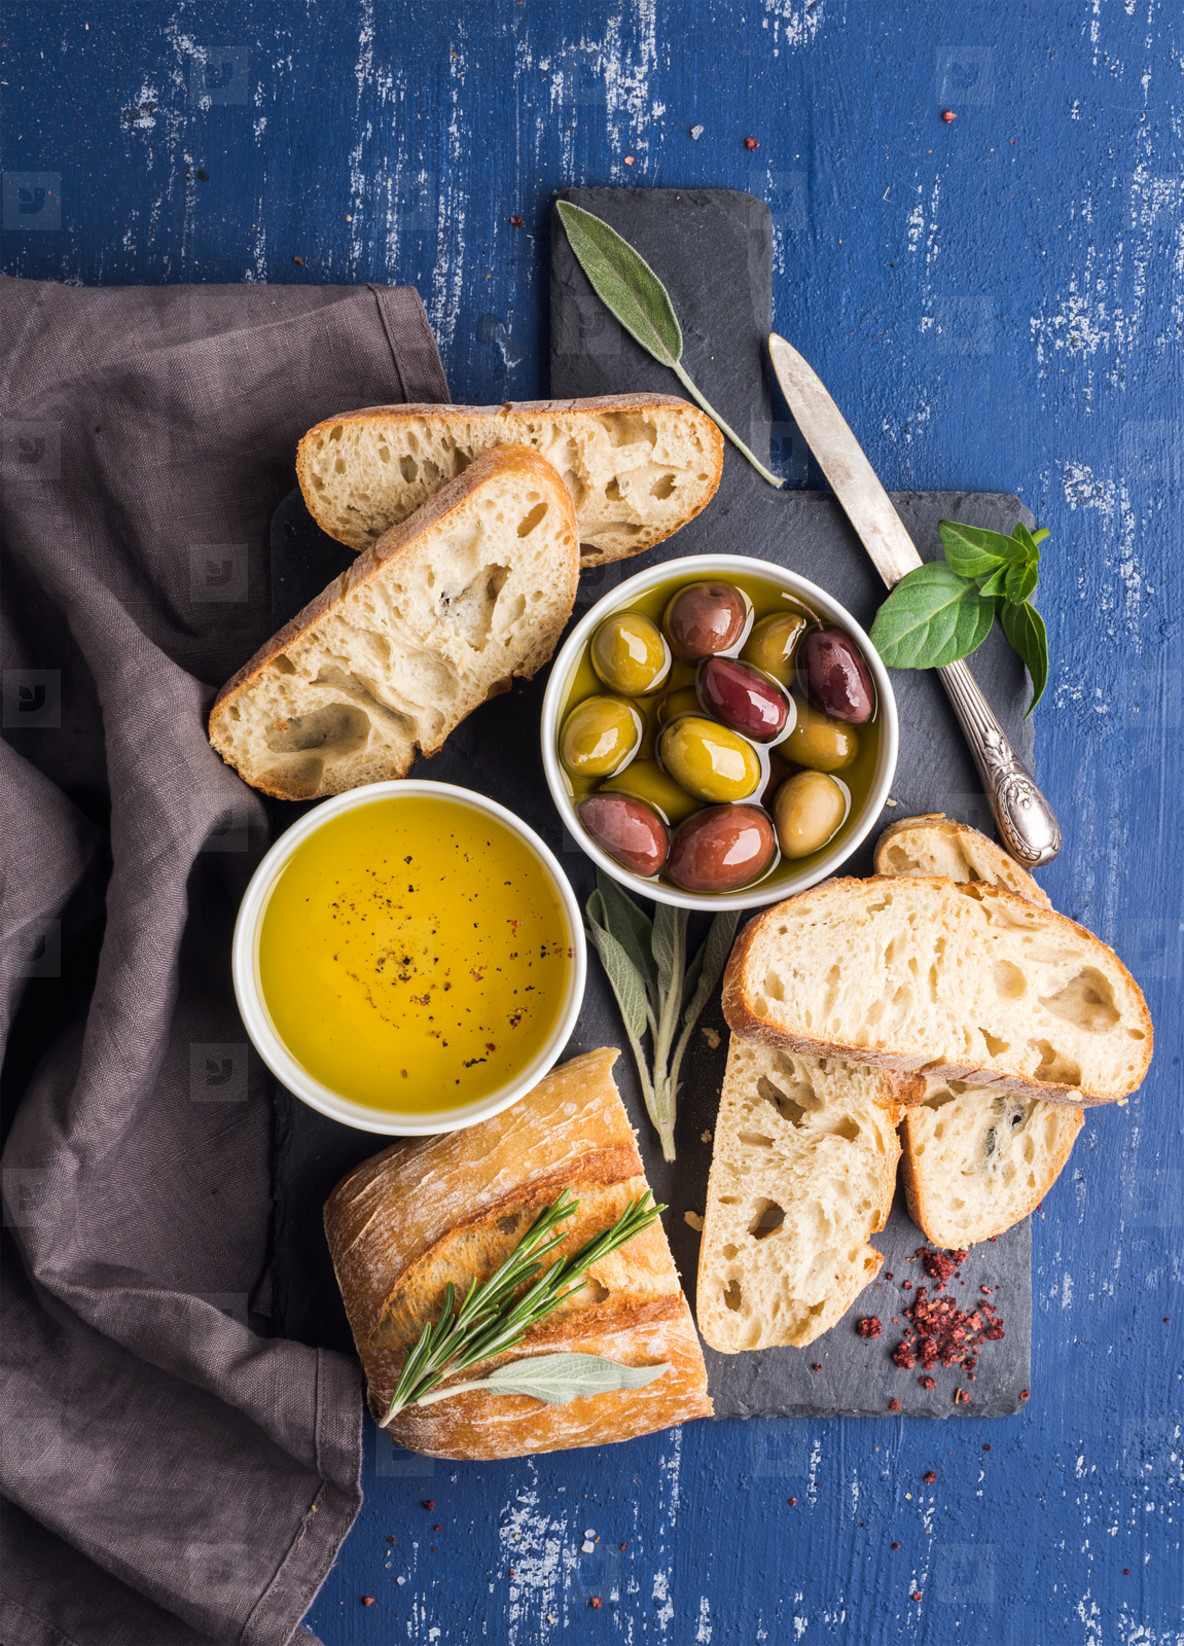 Mediterrane Küche An Bord Mediterranean Snacks Set Olives Oil Herbs And Sliced Ciabatta Bread On Black Slate Stone Board Over Painted Dark Blue Background